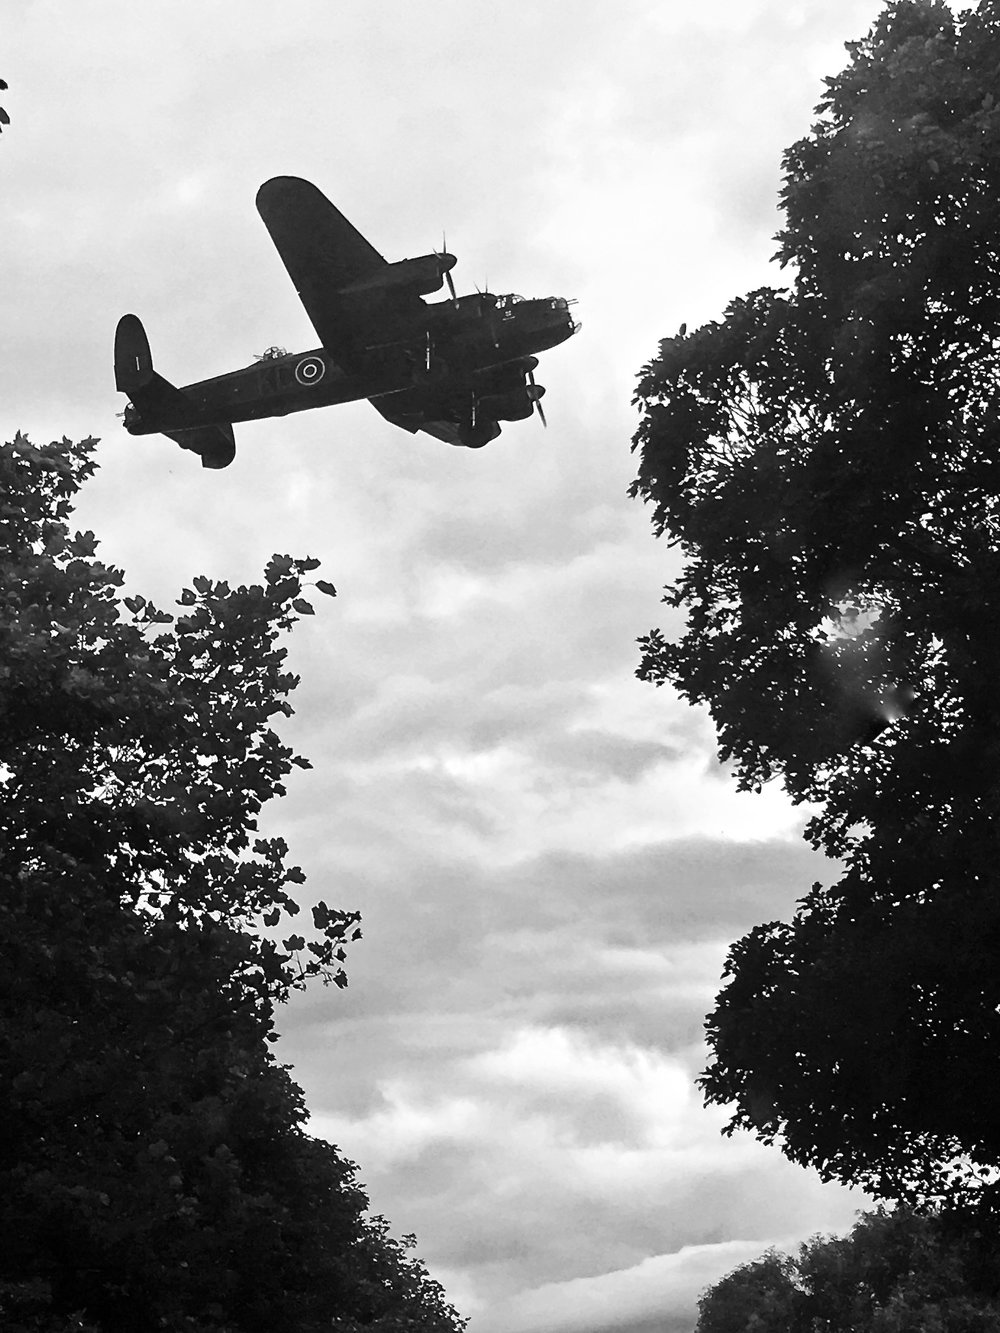 It's not every day a Lancaster Bomber lands almost on top of you. No DSLR?no problem! Shot on my iPhone.